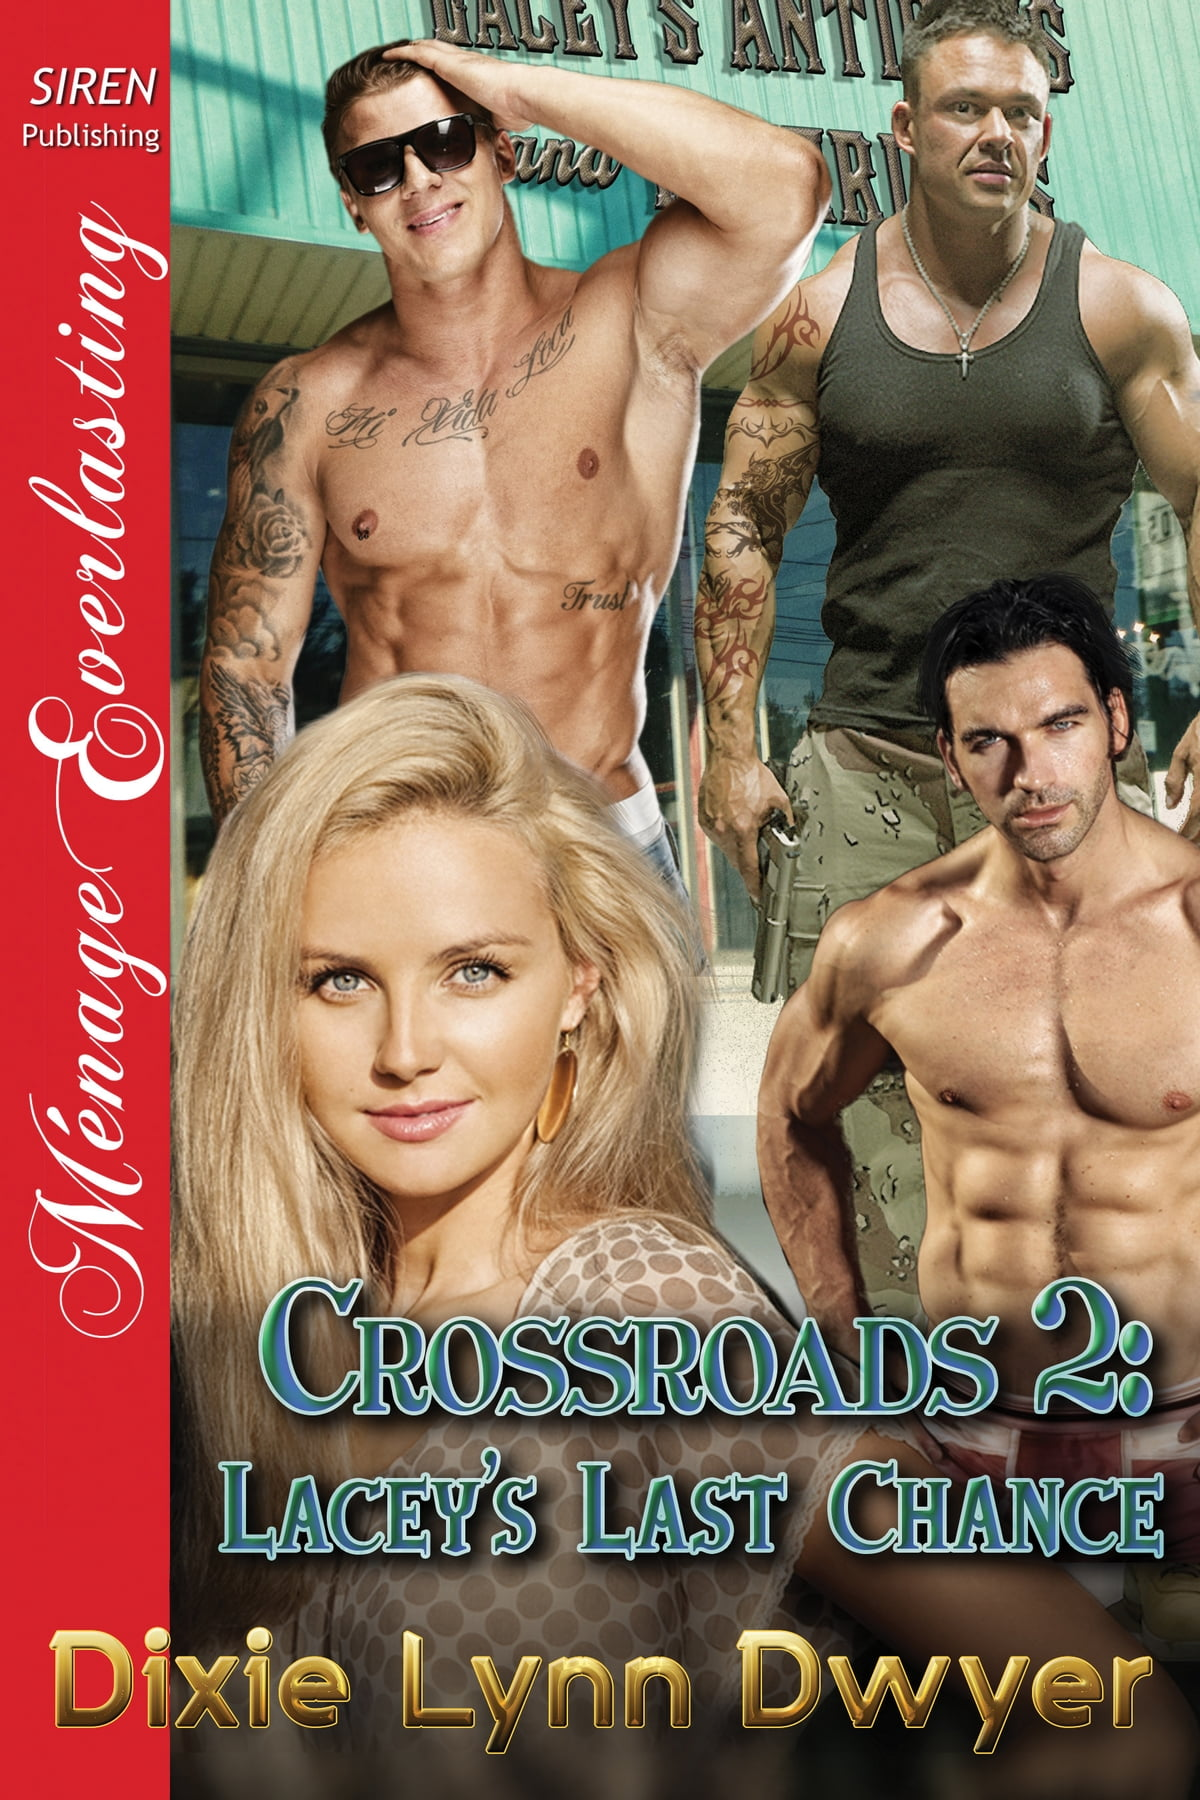 Crossroads 2: Lacey's Last Chance Ebook By Dixie Lynn Dwyer  9781632592880   Rakuten Kobo